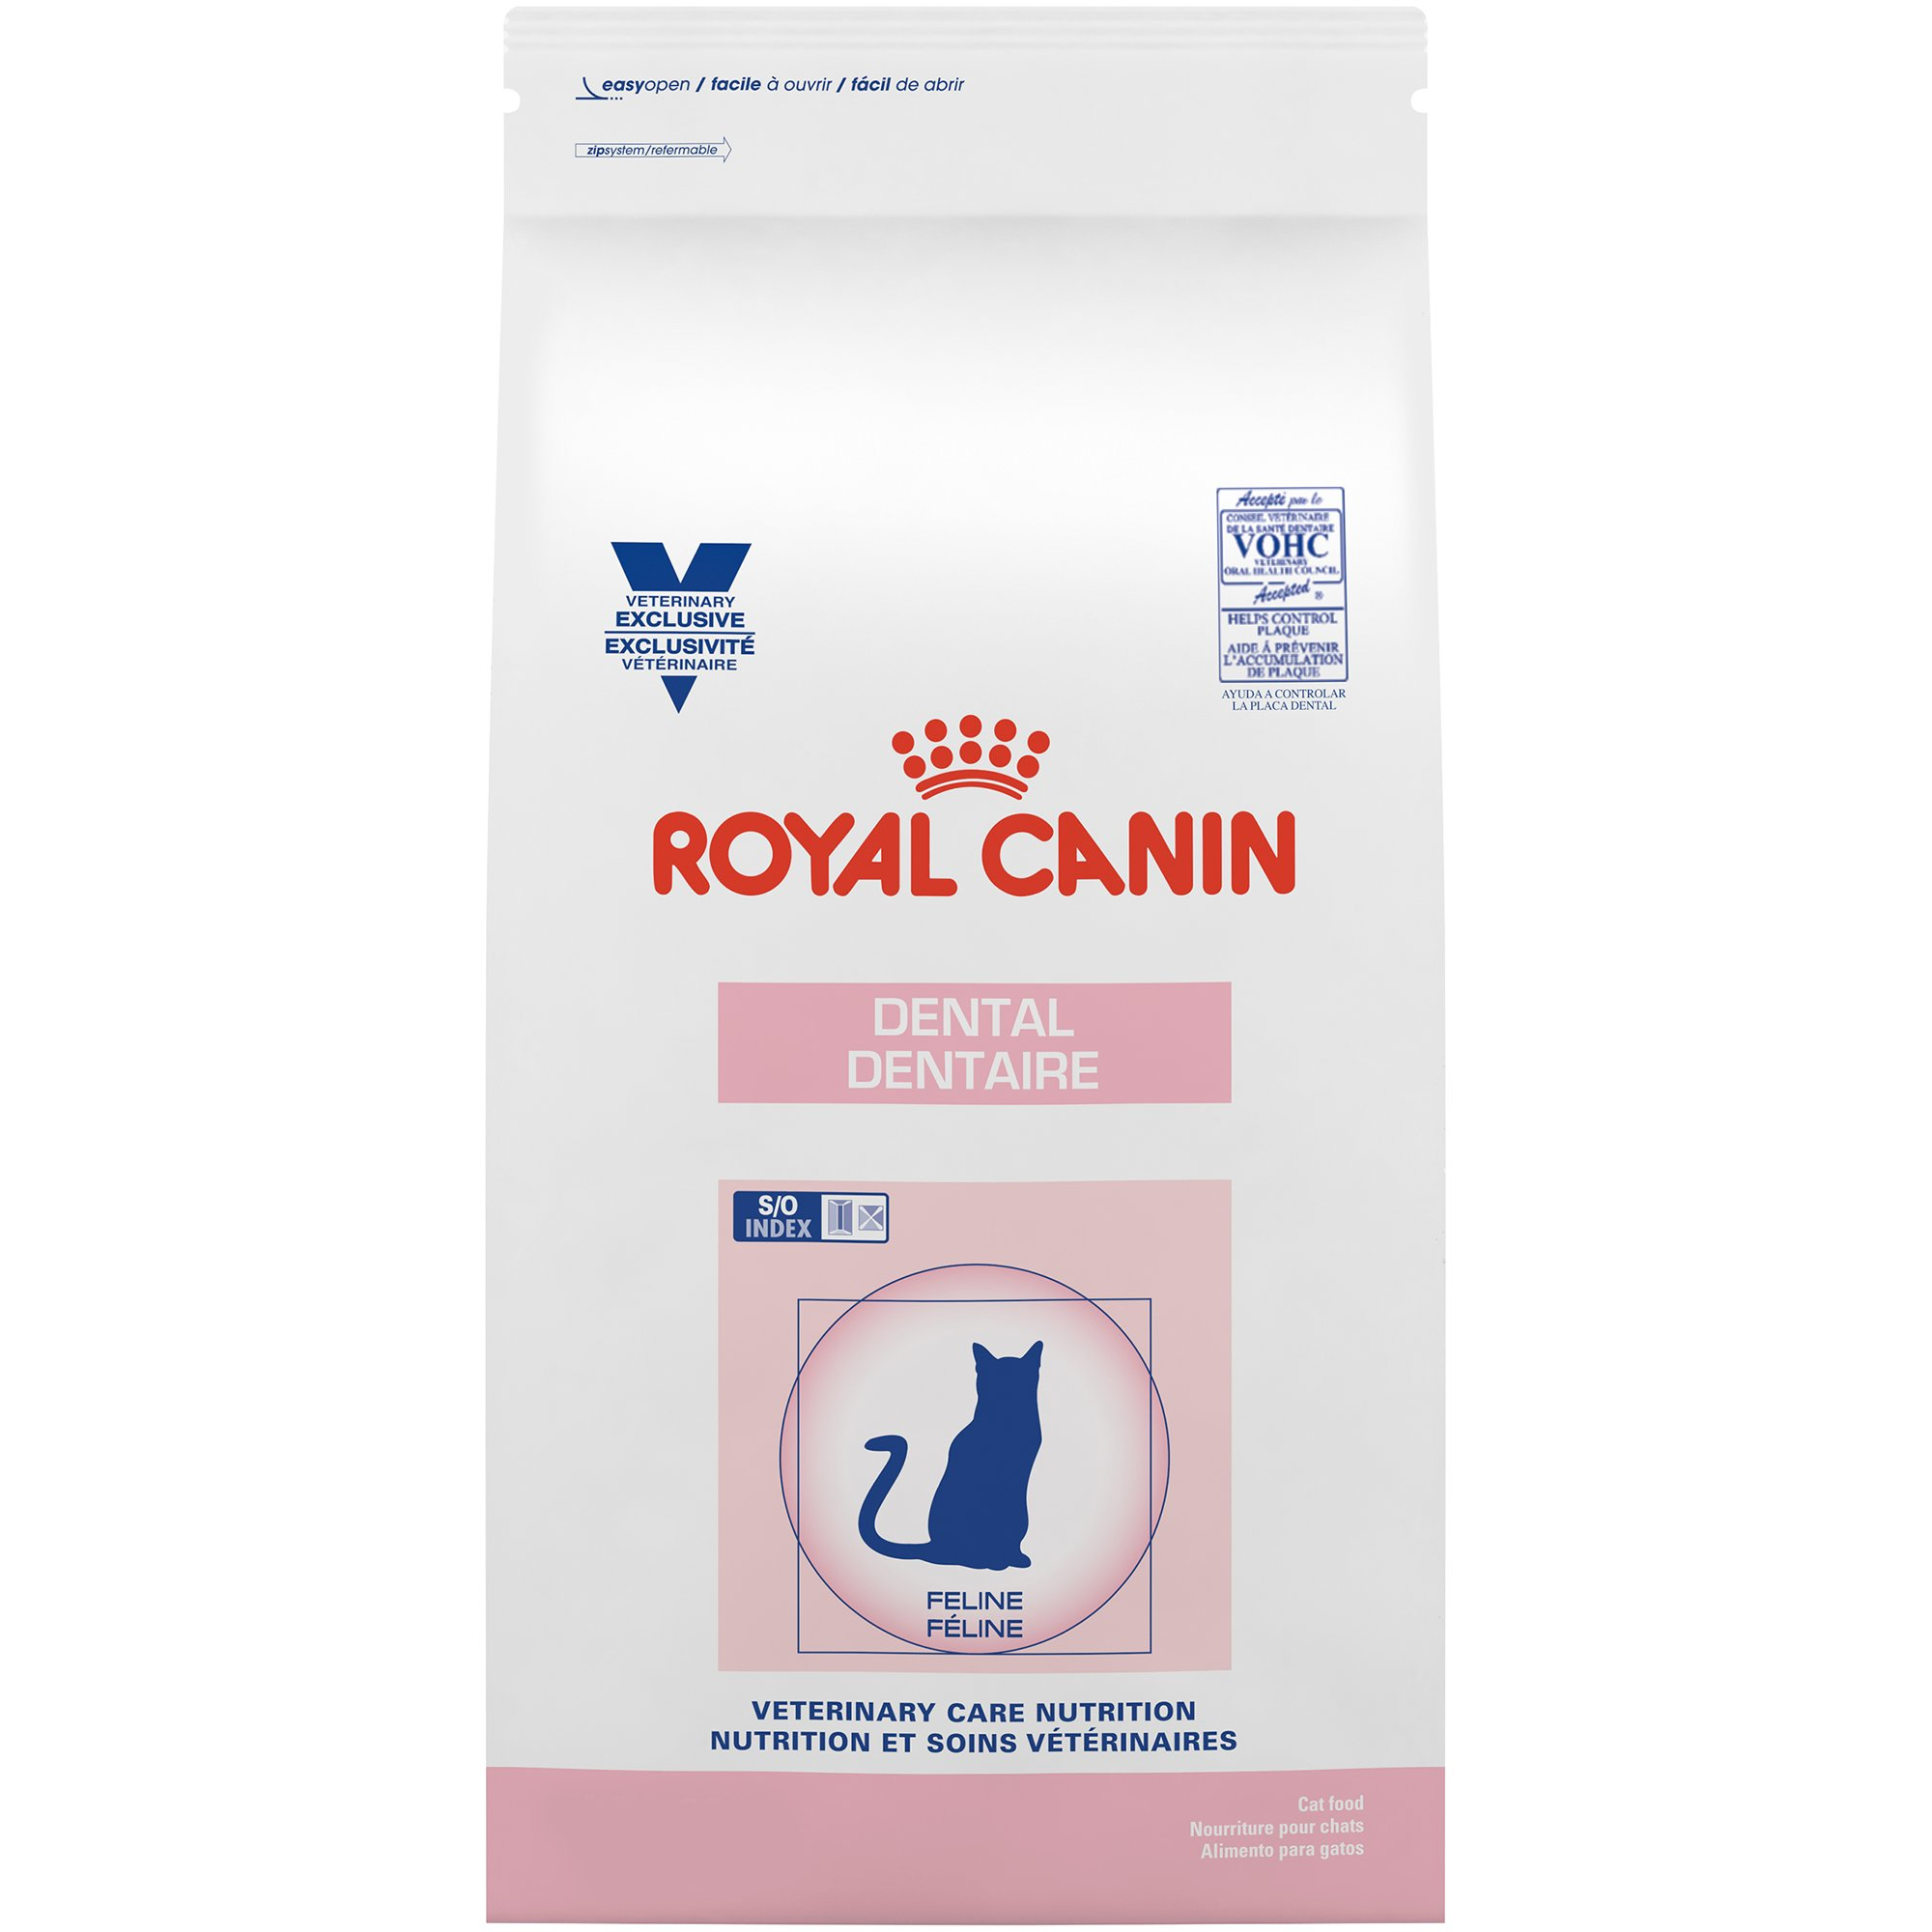 Royal Canin Veterinary Care Nutrition Feline Dental Dry Cat Food